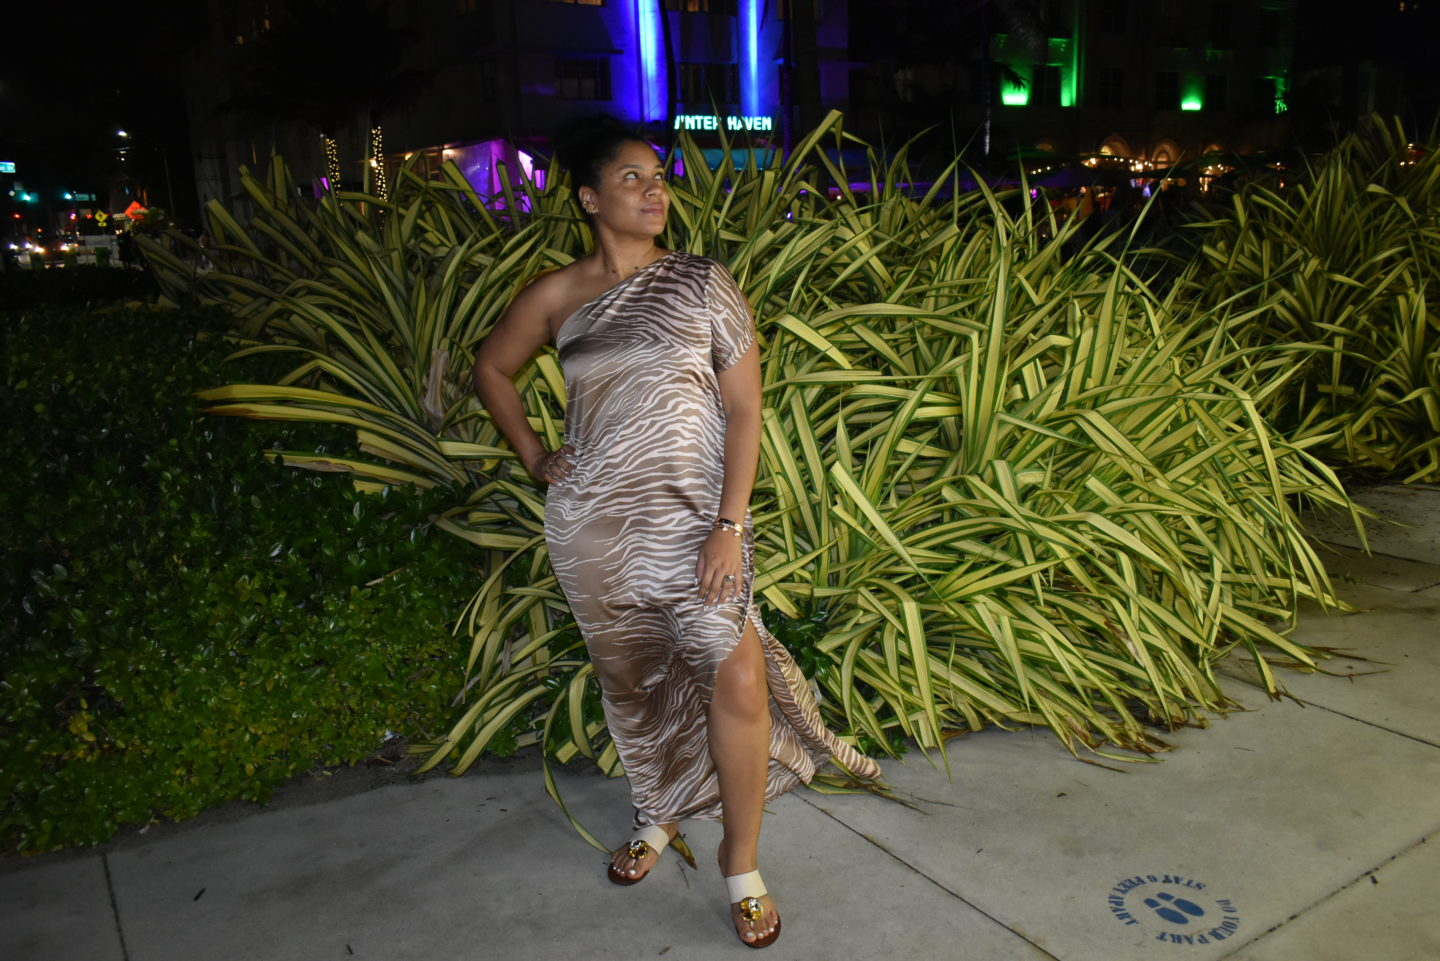 South Beach Nightlife During COVID